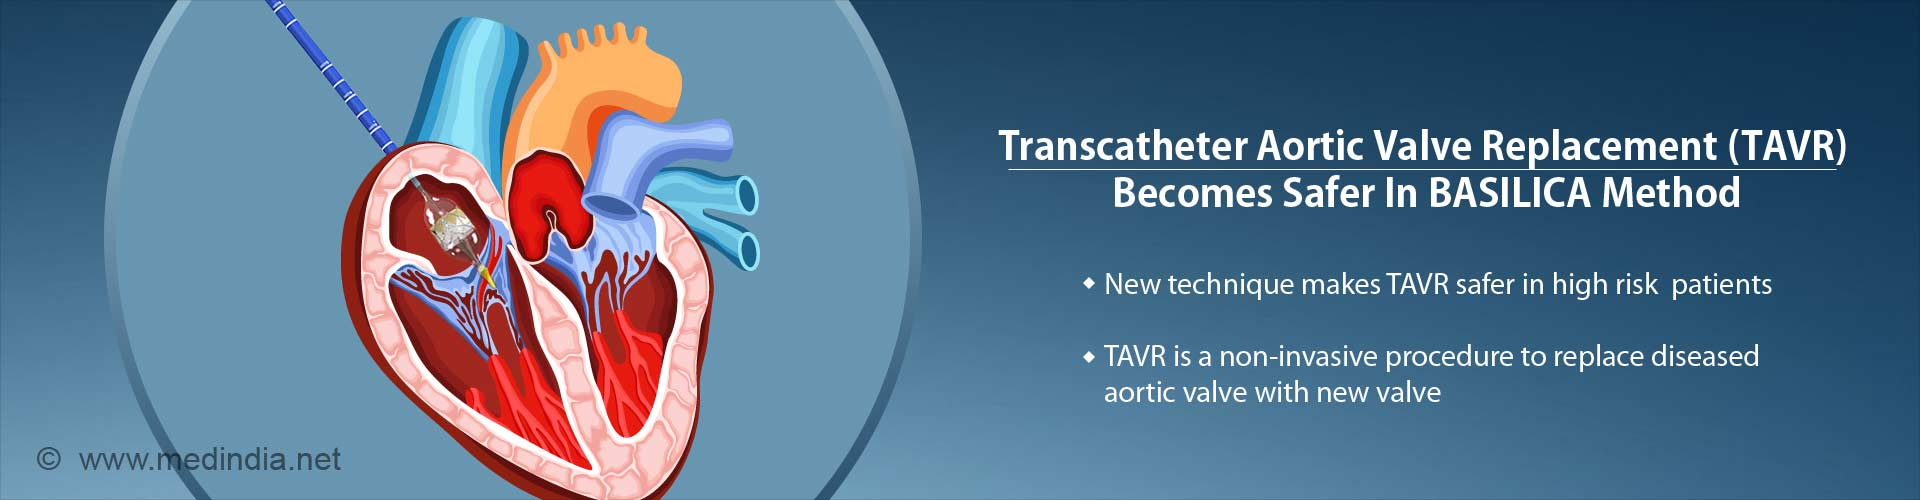 transcatherter aortic valve replacement (TAVR) becomes safer in BASILICA method - new technique makes TAVR safer in high risk patients - TAVR is a non-invasive procedure to replace diseased aortic valve woth new valve